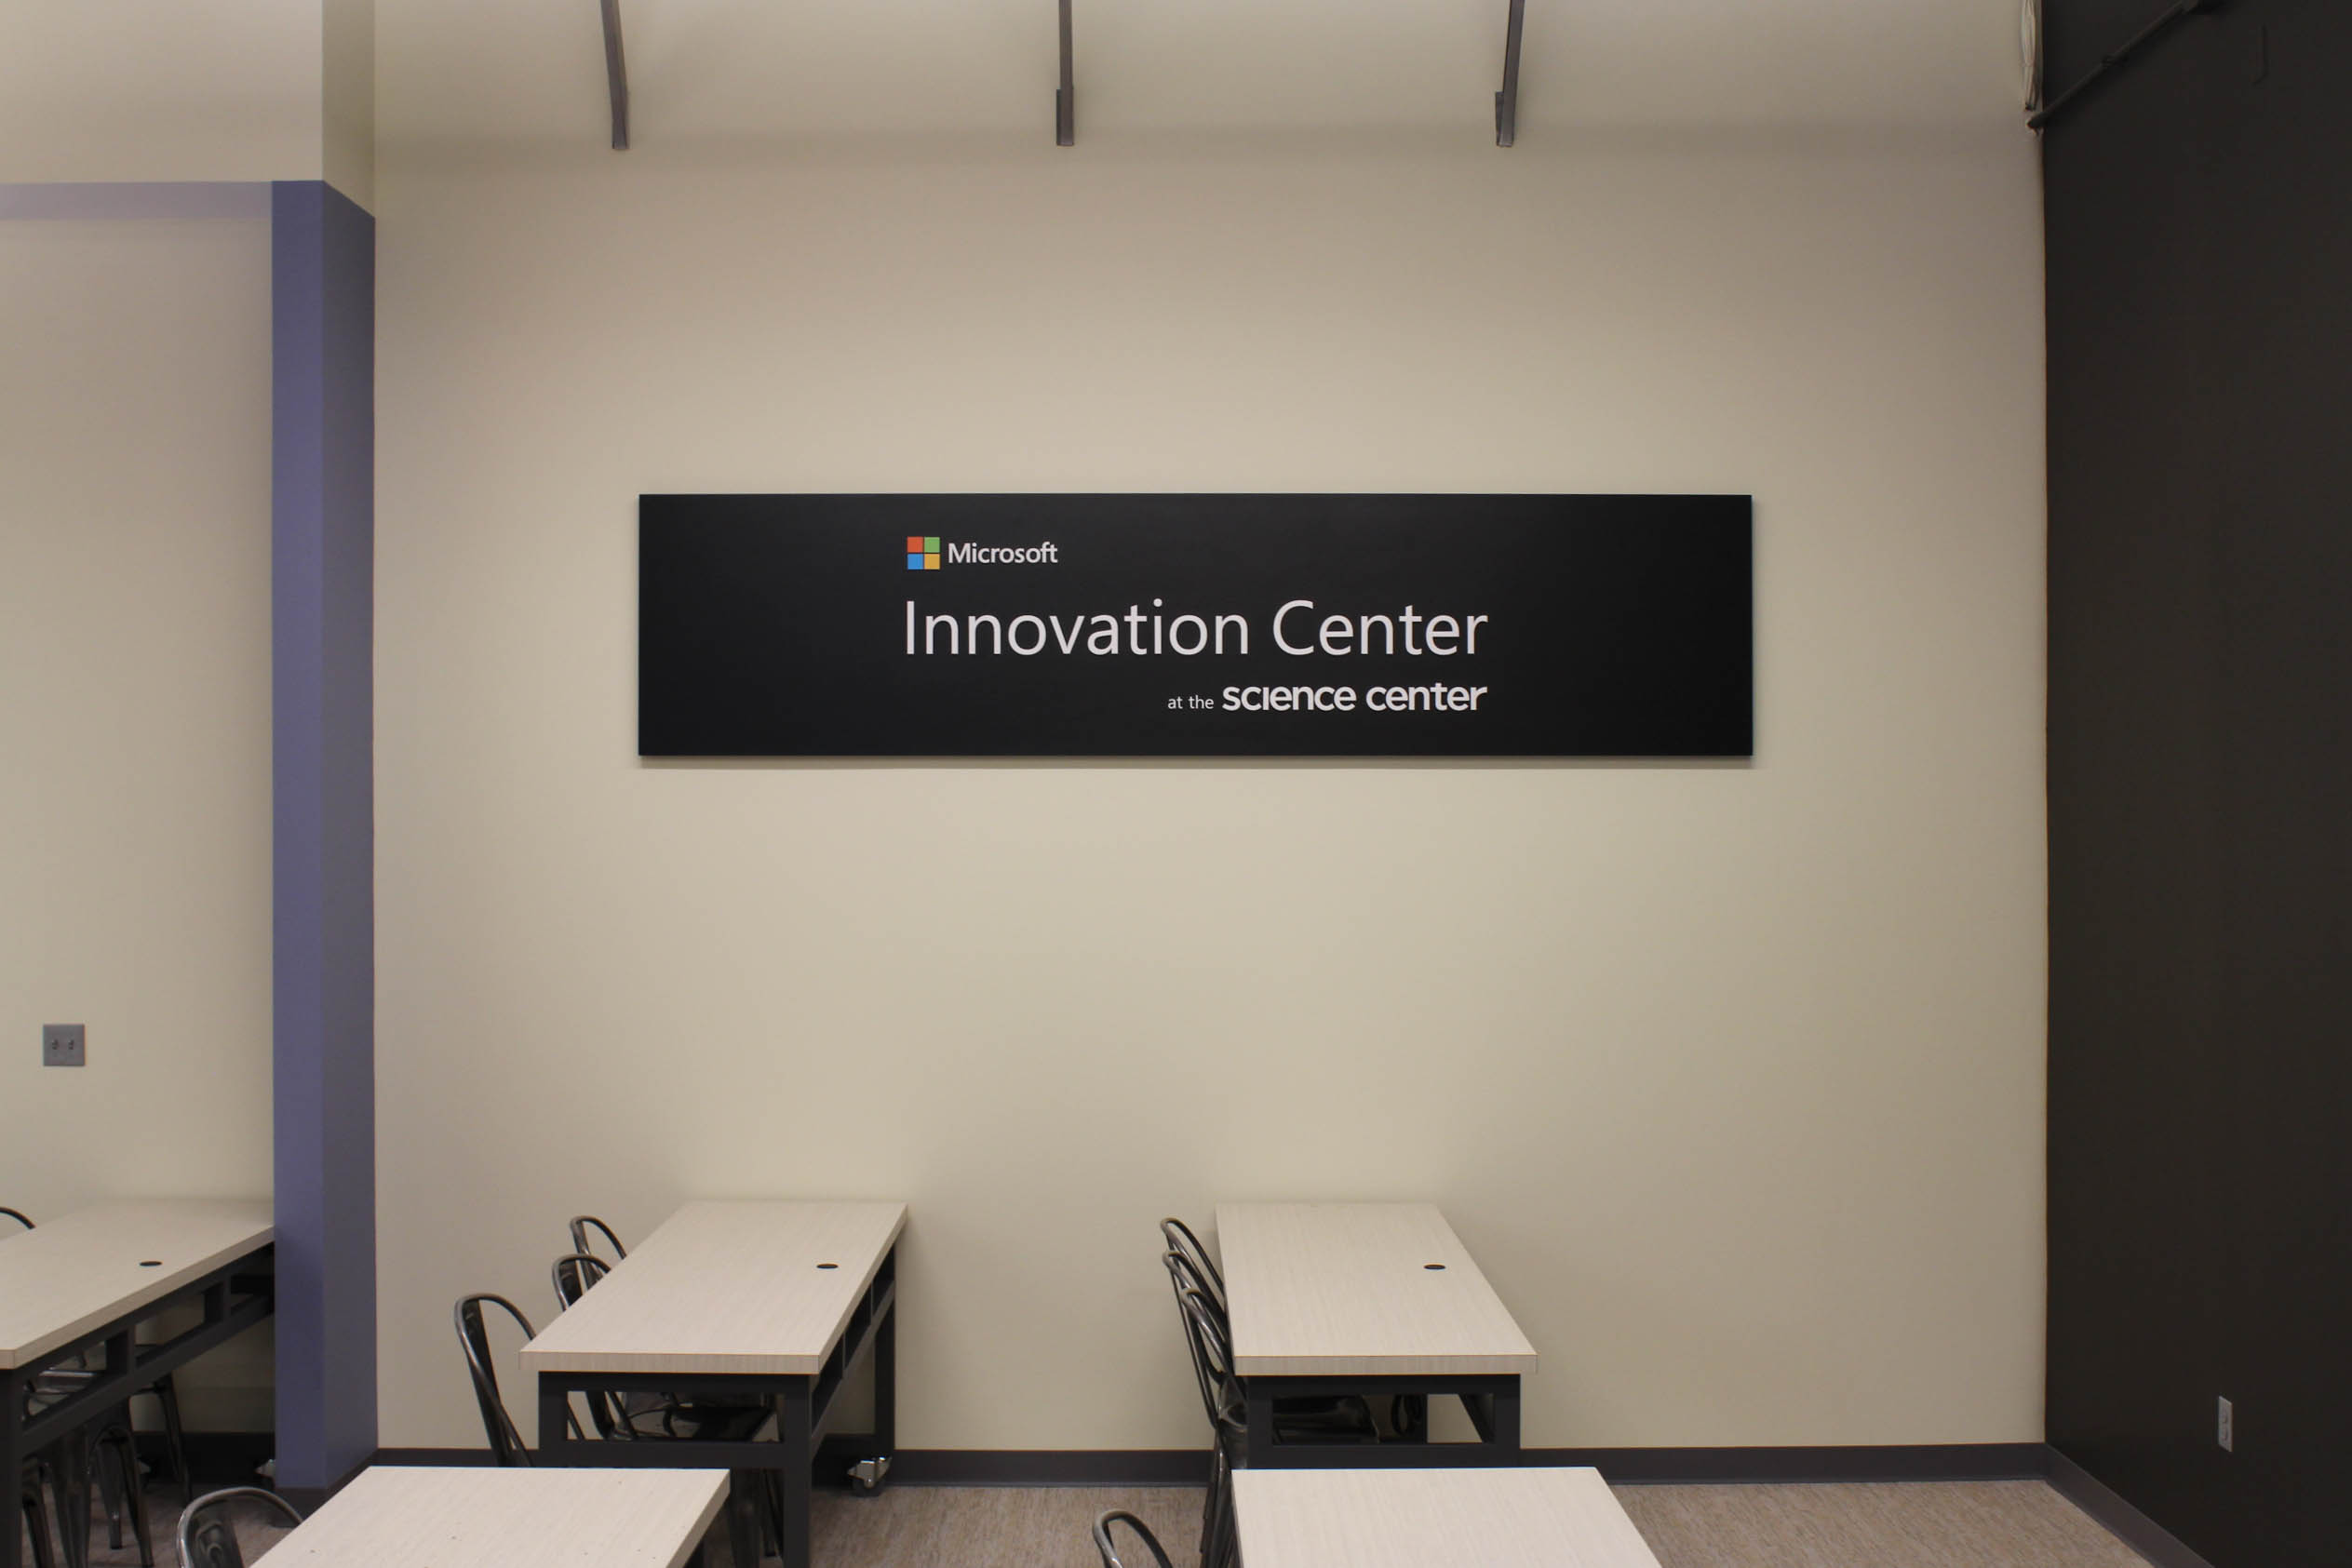 Your First Look at the Microsoft Innovation Center | On The Level